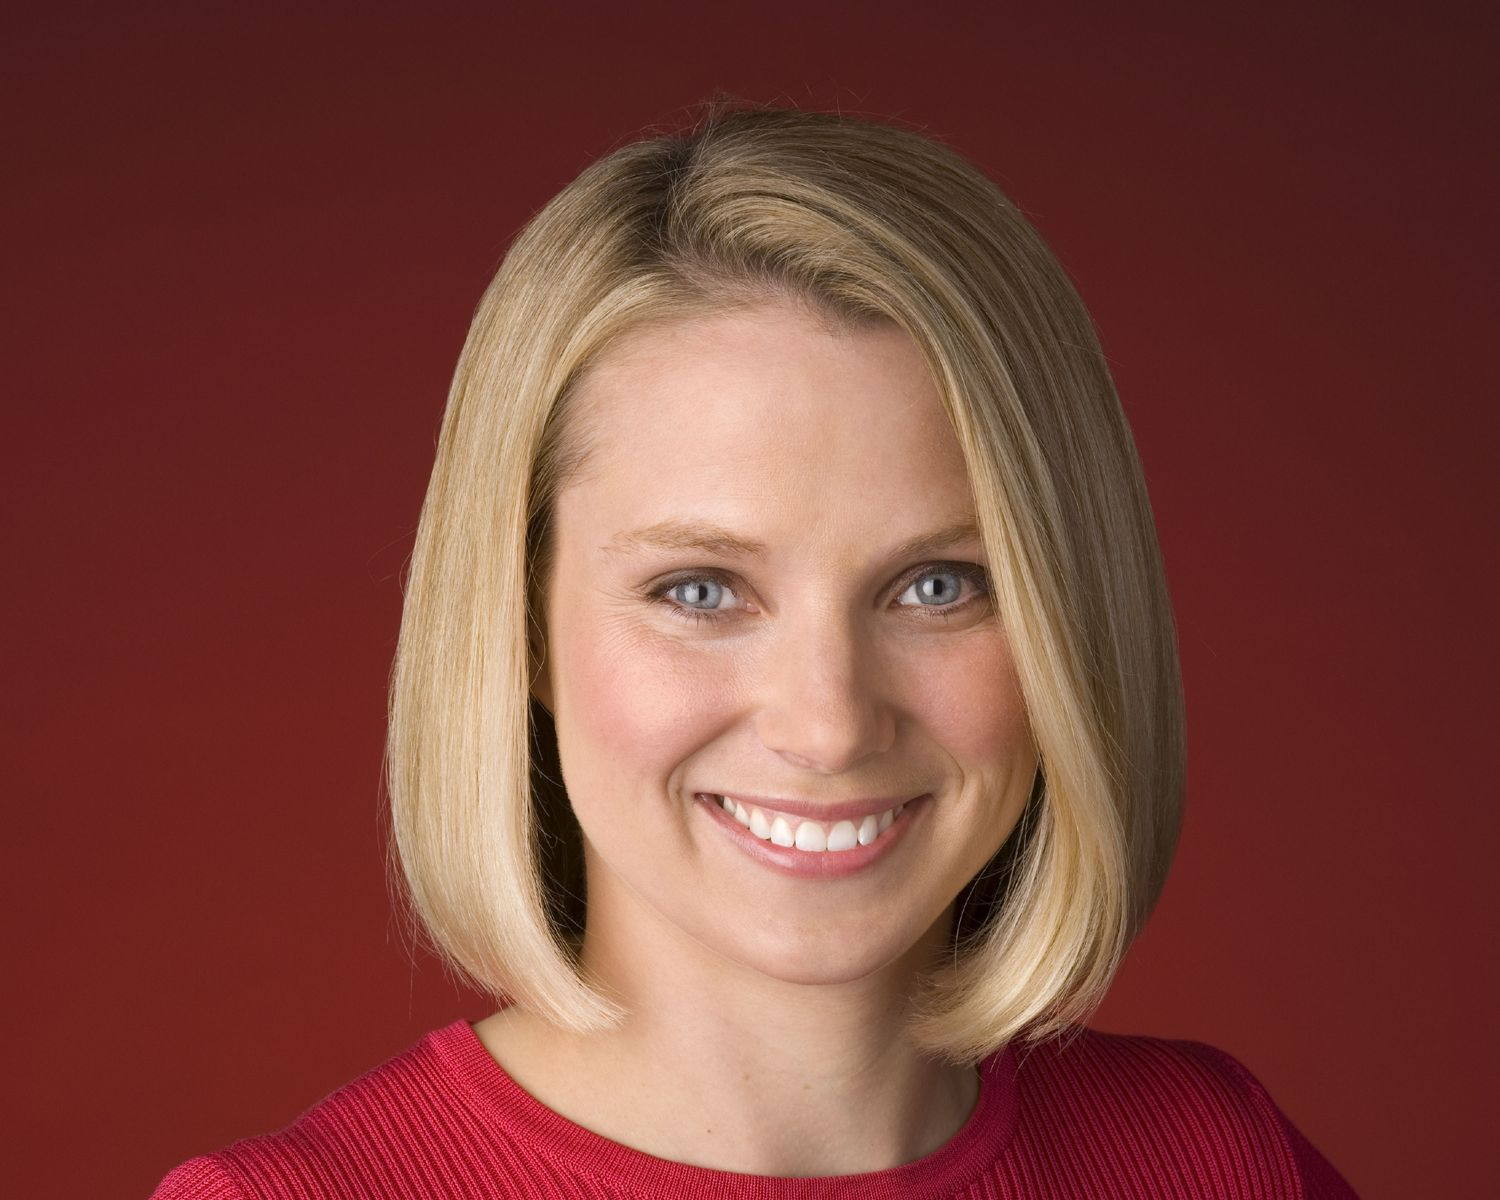 Marissa Mayer Quotes. This most influential people's quotes bucket present quotes by influential people. Marissa Mayer was listed in the Time's 100 most influential people of 2013. Marissa Mayer, President and CEO of Yahoo was included in the Pioneers category of the Time's 100 most influencing people's list